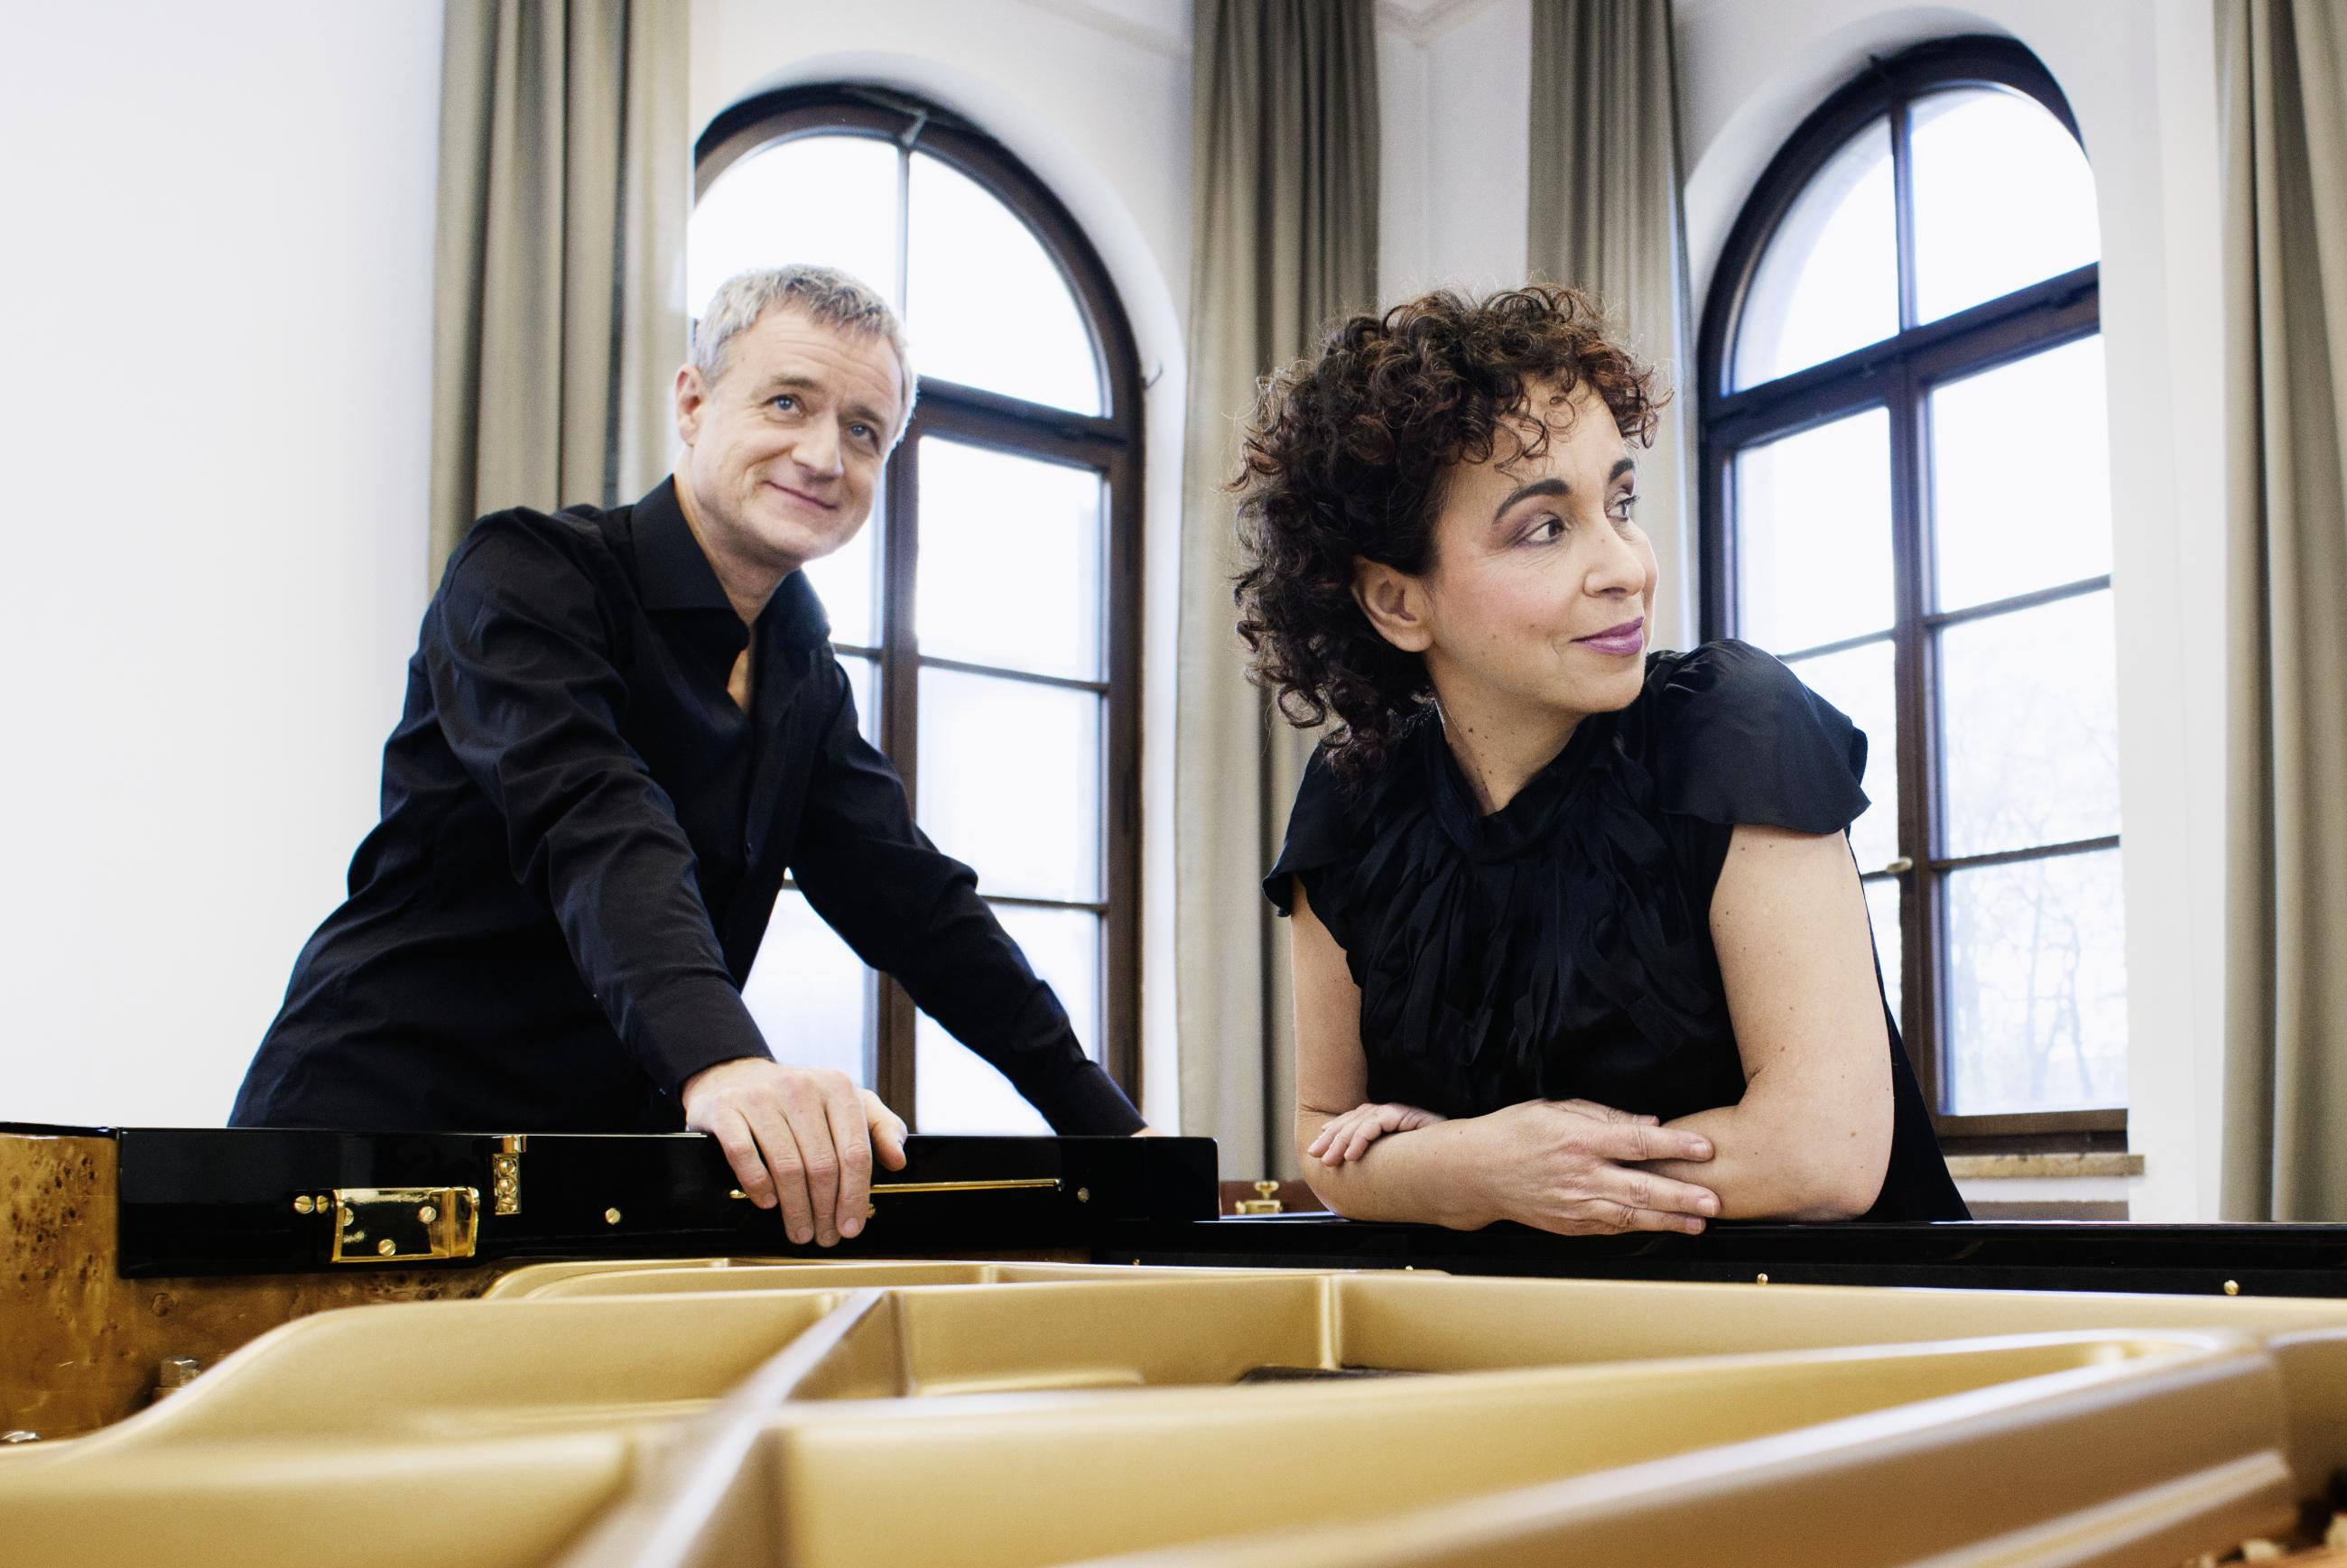 Duo Tal and Groethuysen leaning over an open grand piano